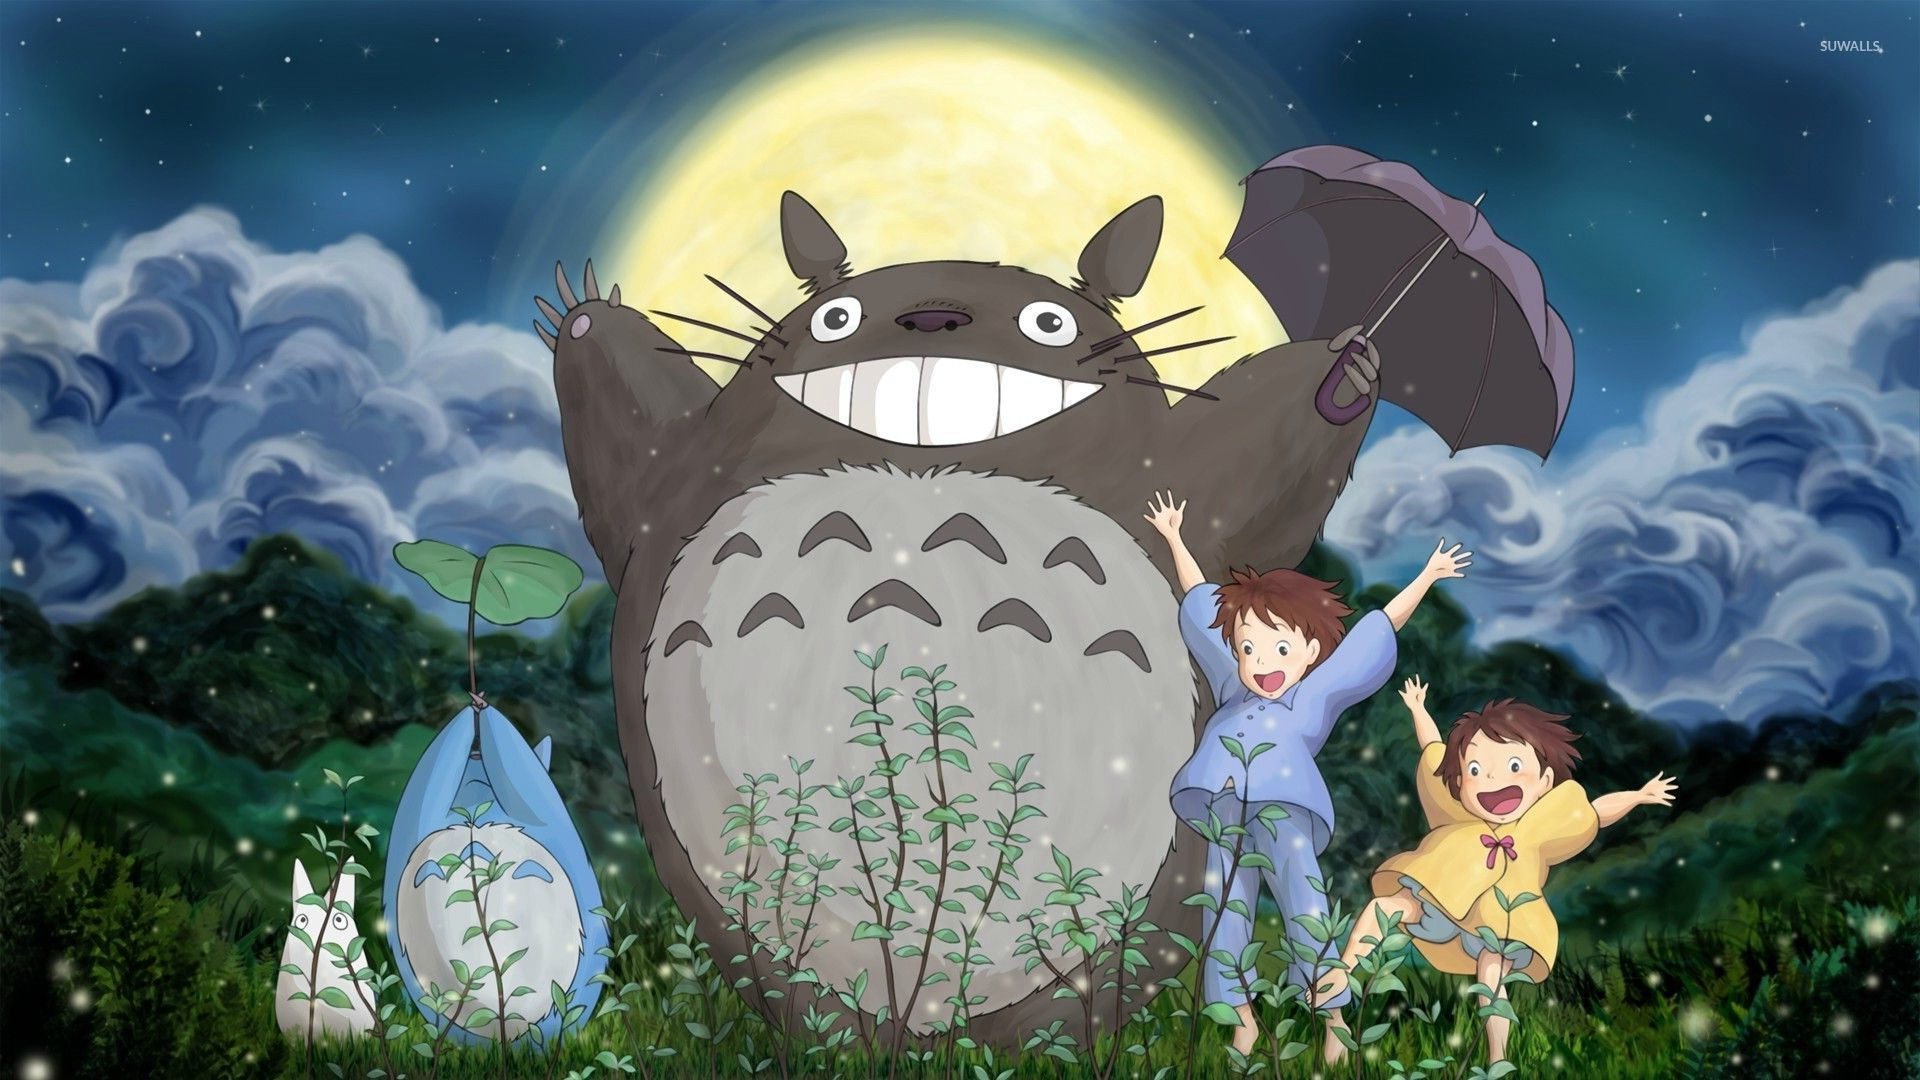 My Neighbor Totoro wallpaper Anime wallpapers 27257